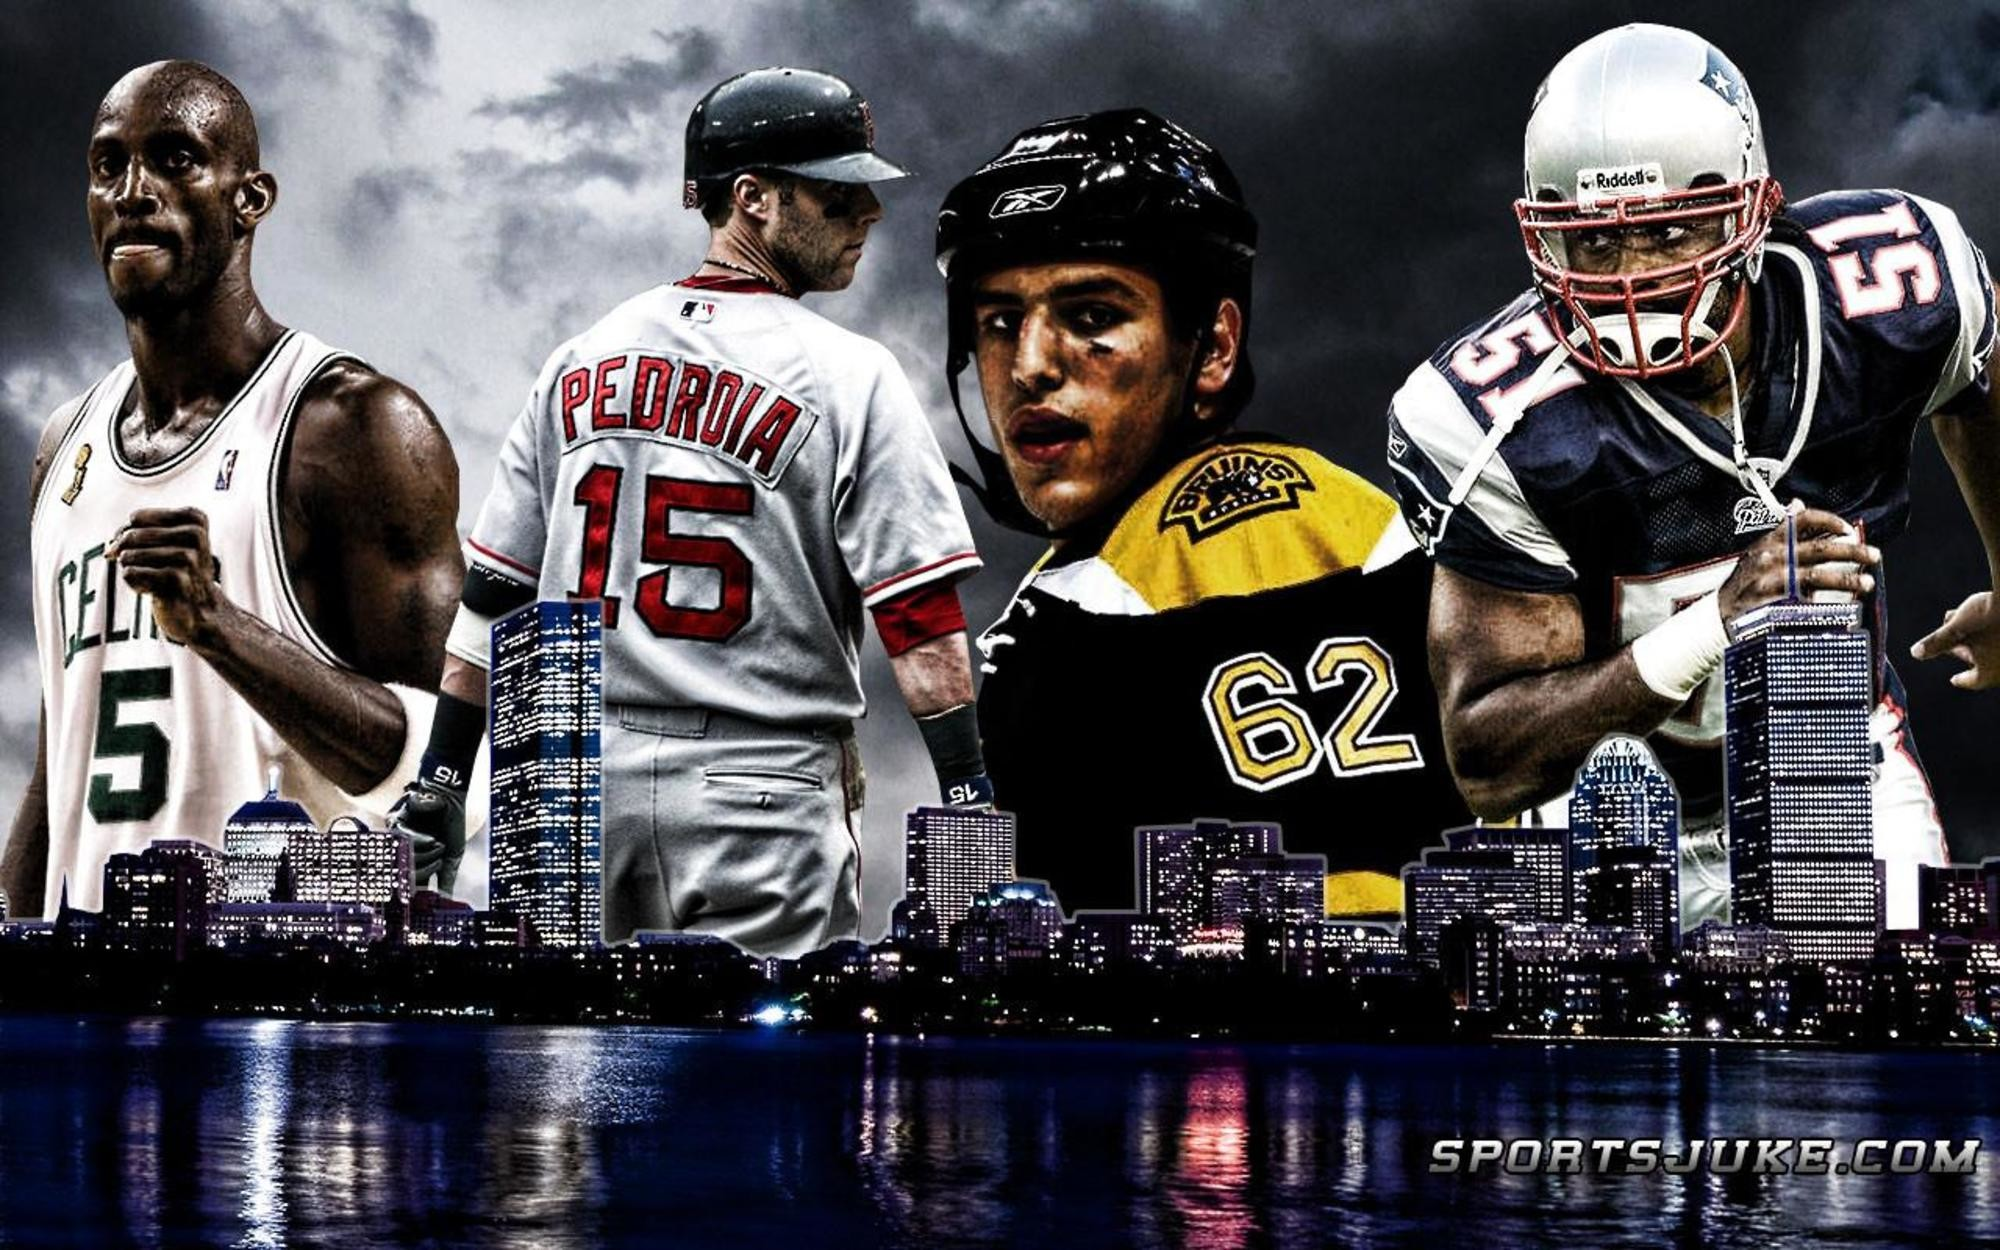 753485-download-free-boston-sports-wallpaper-2000x1250.jpg